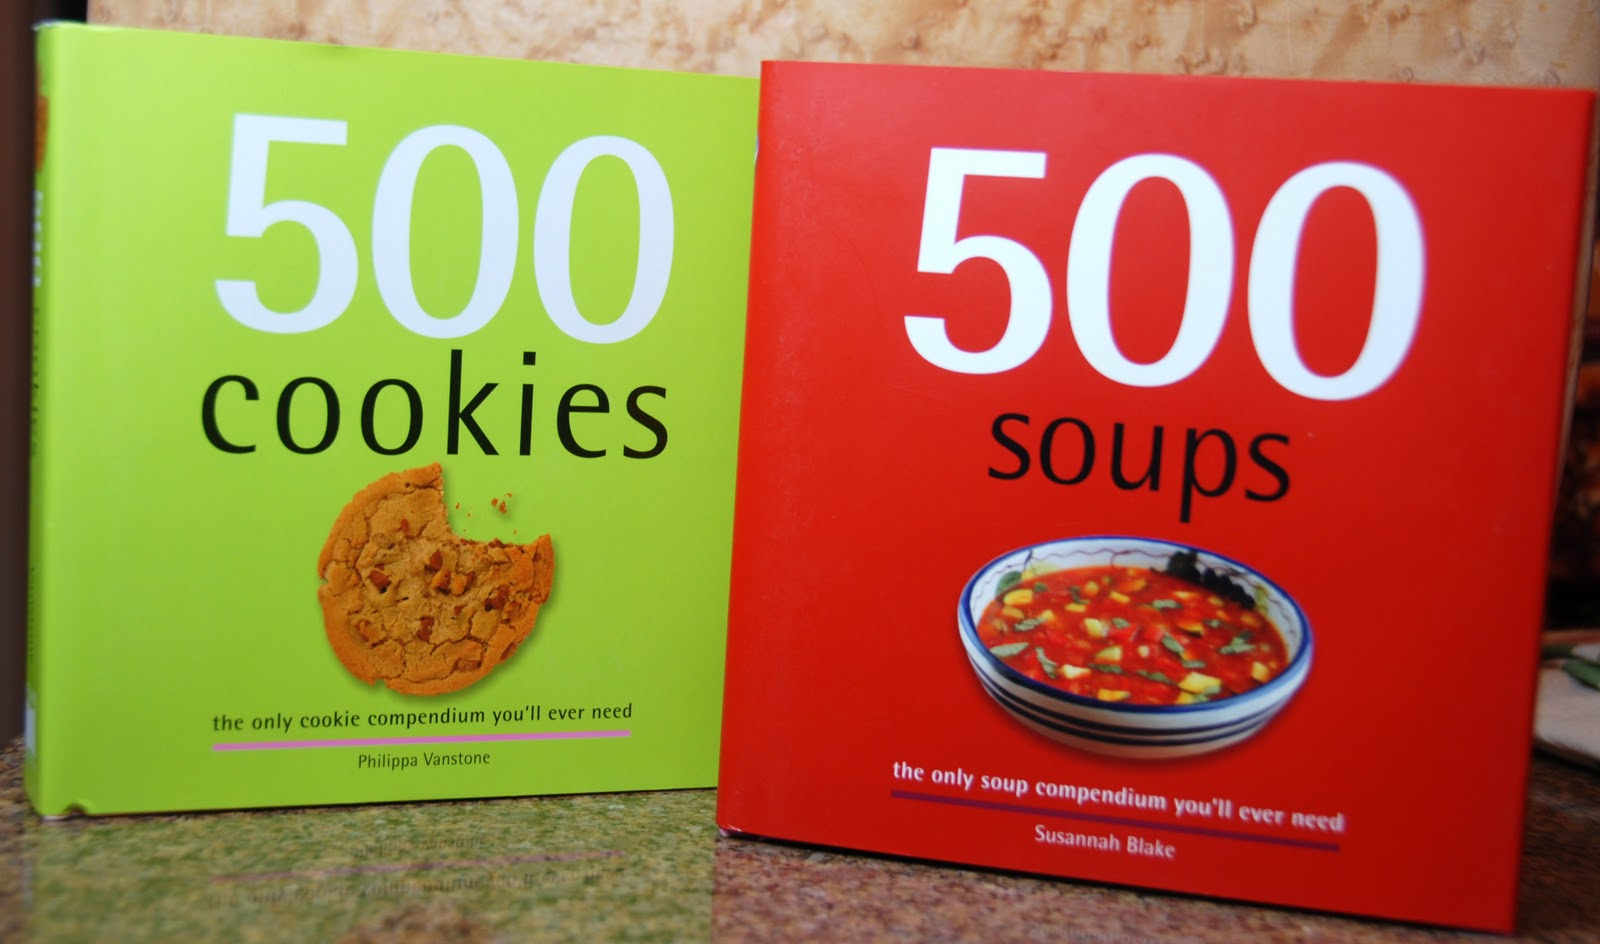 Shop local for the holidays the white lion shop lyons co white lion carries these cute fat compendium 500 recipe books varied by theme i have two myself and between the diminutive size and wonderful recipes forumfinder Gallery